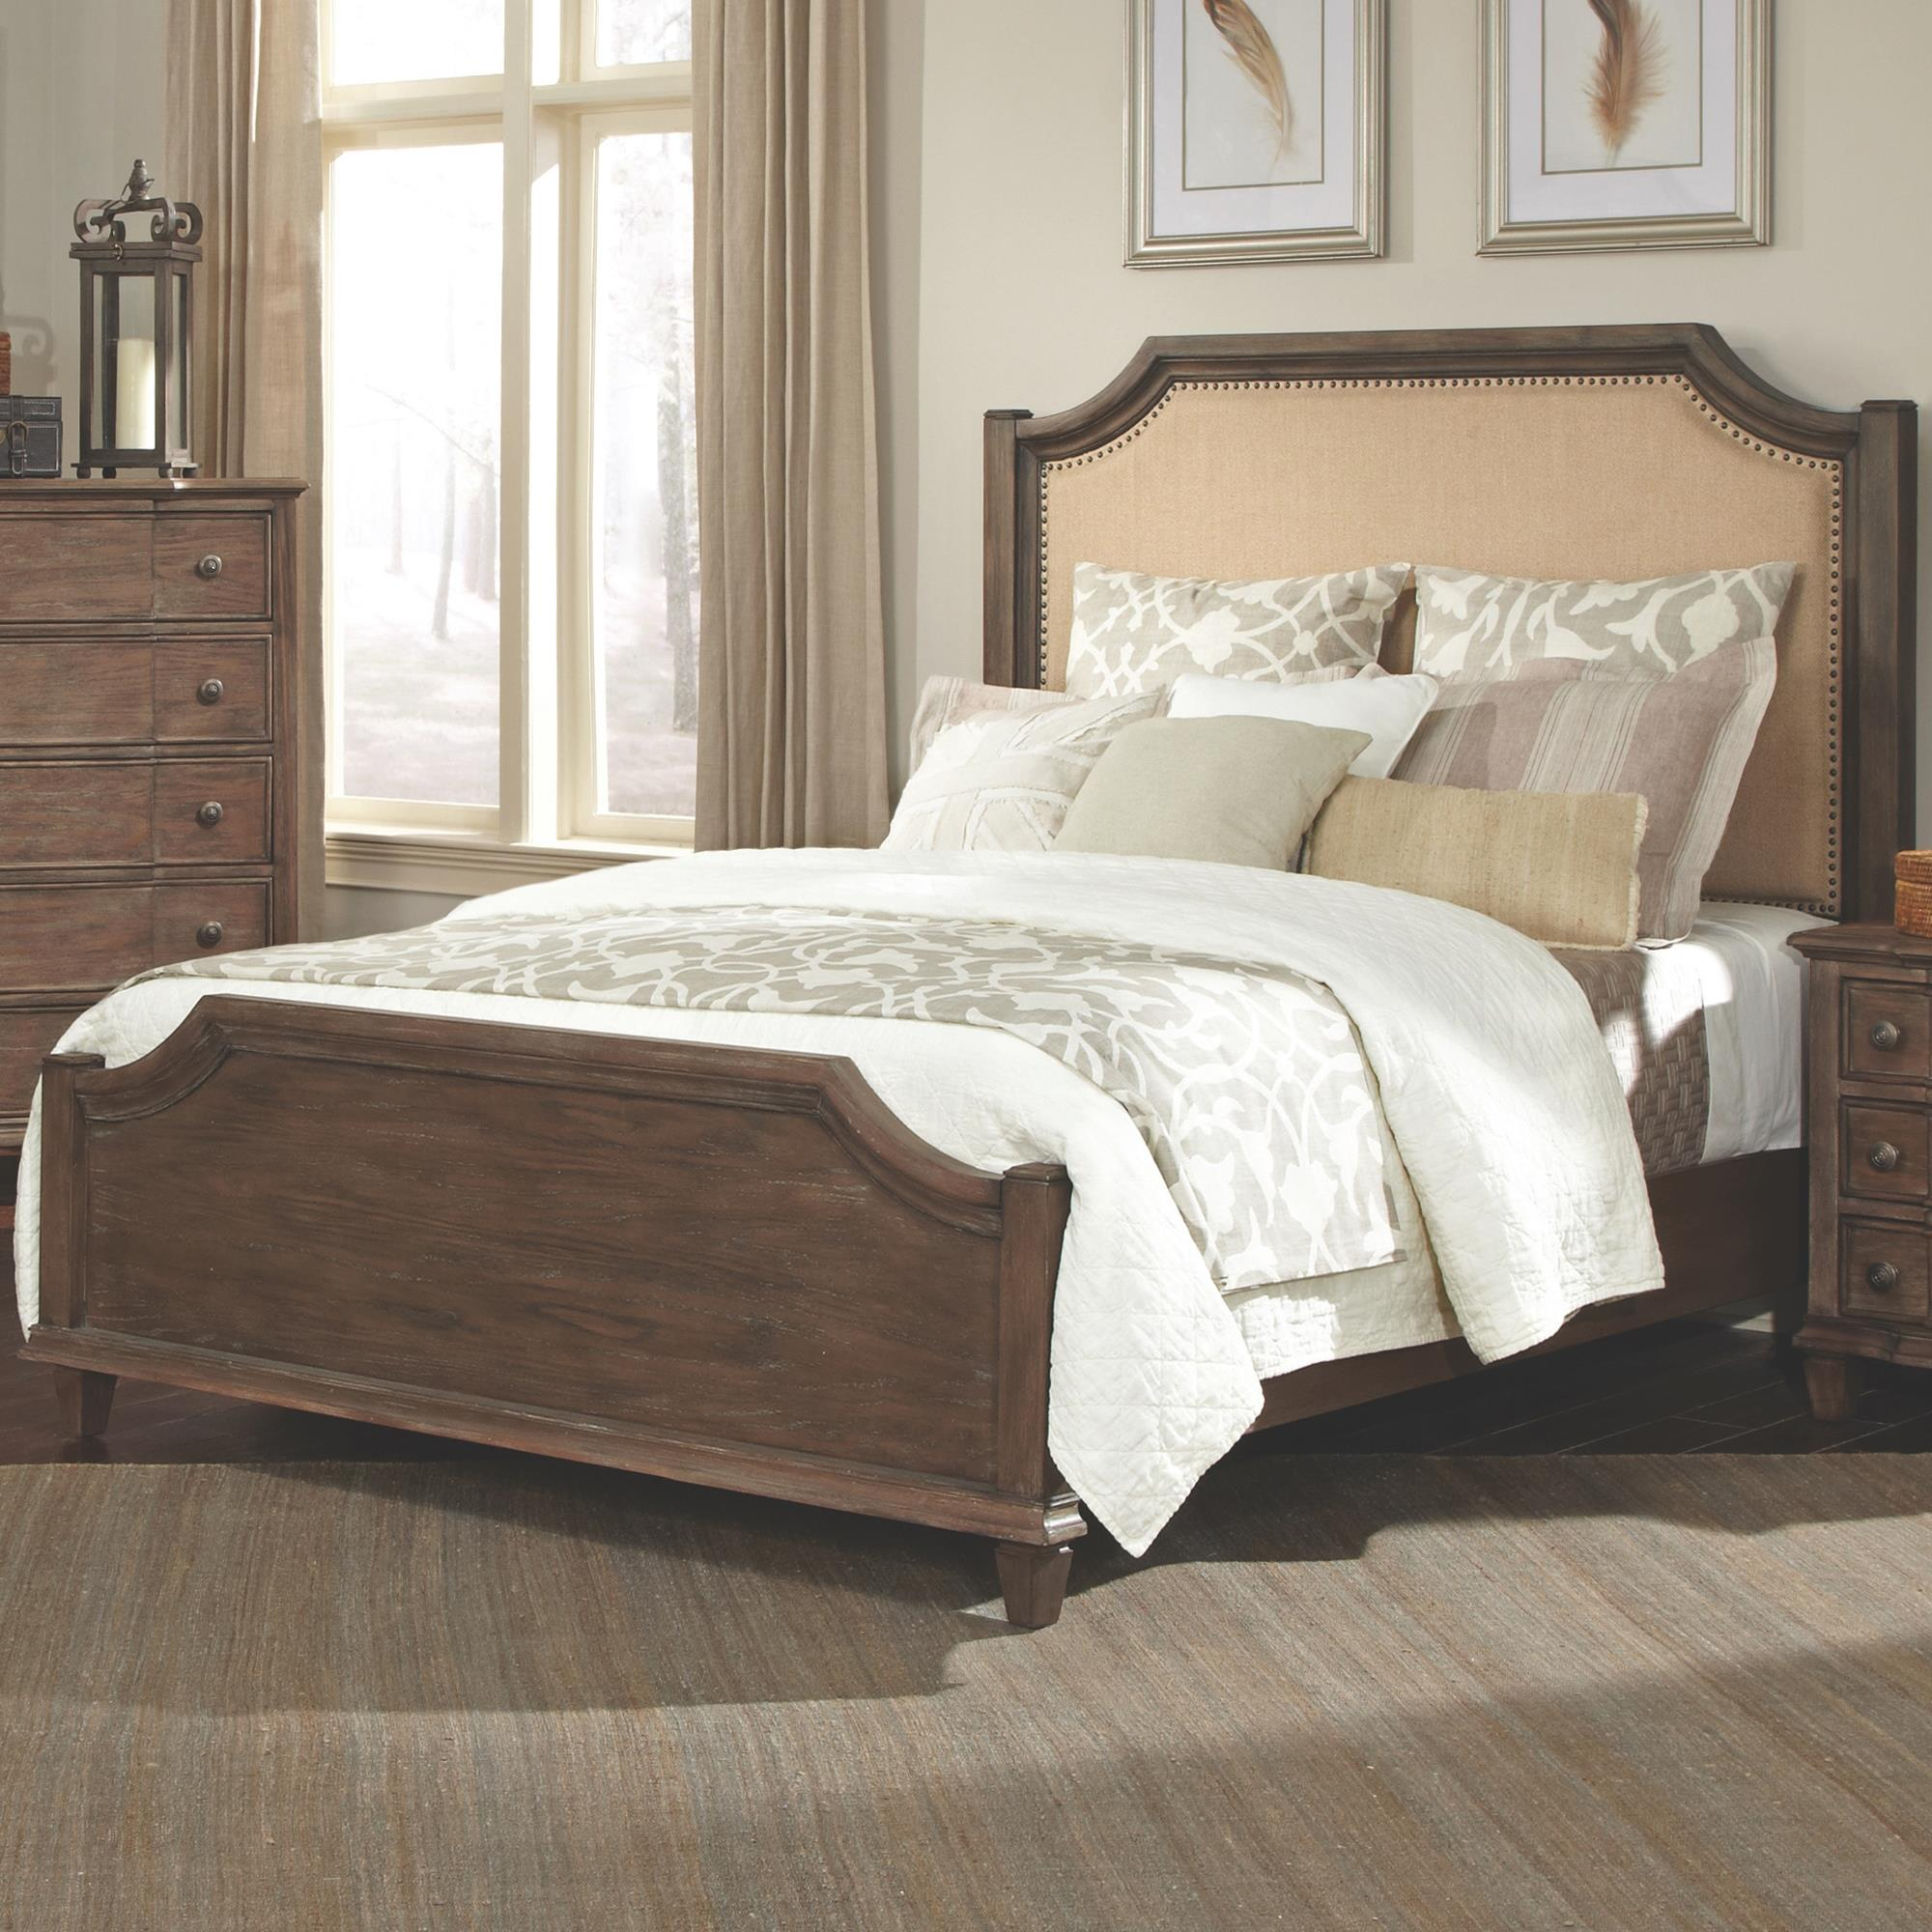 Dalgarno California King Bed With Upholstered Headboard And Curved Details Quality Furniture At Affordable Prices In Philadelphia Main Line Pa